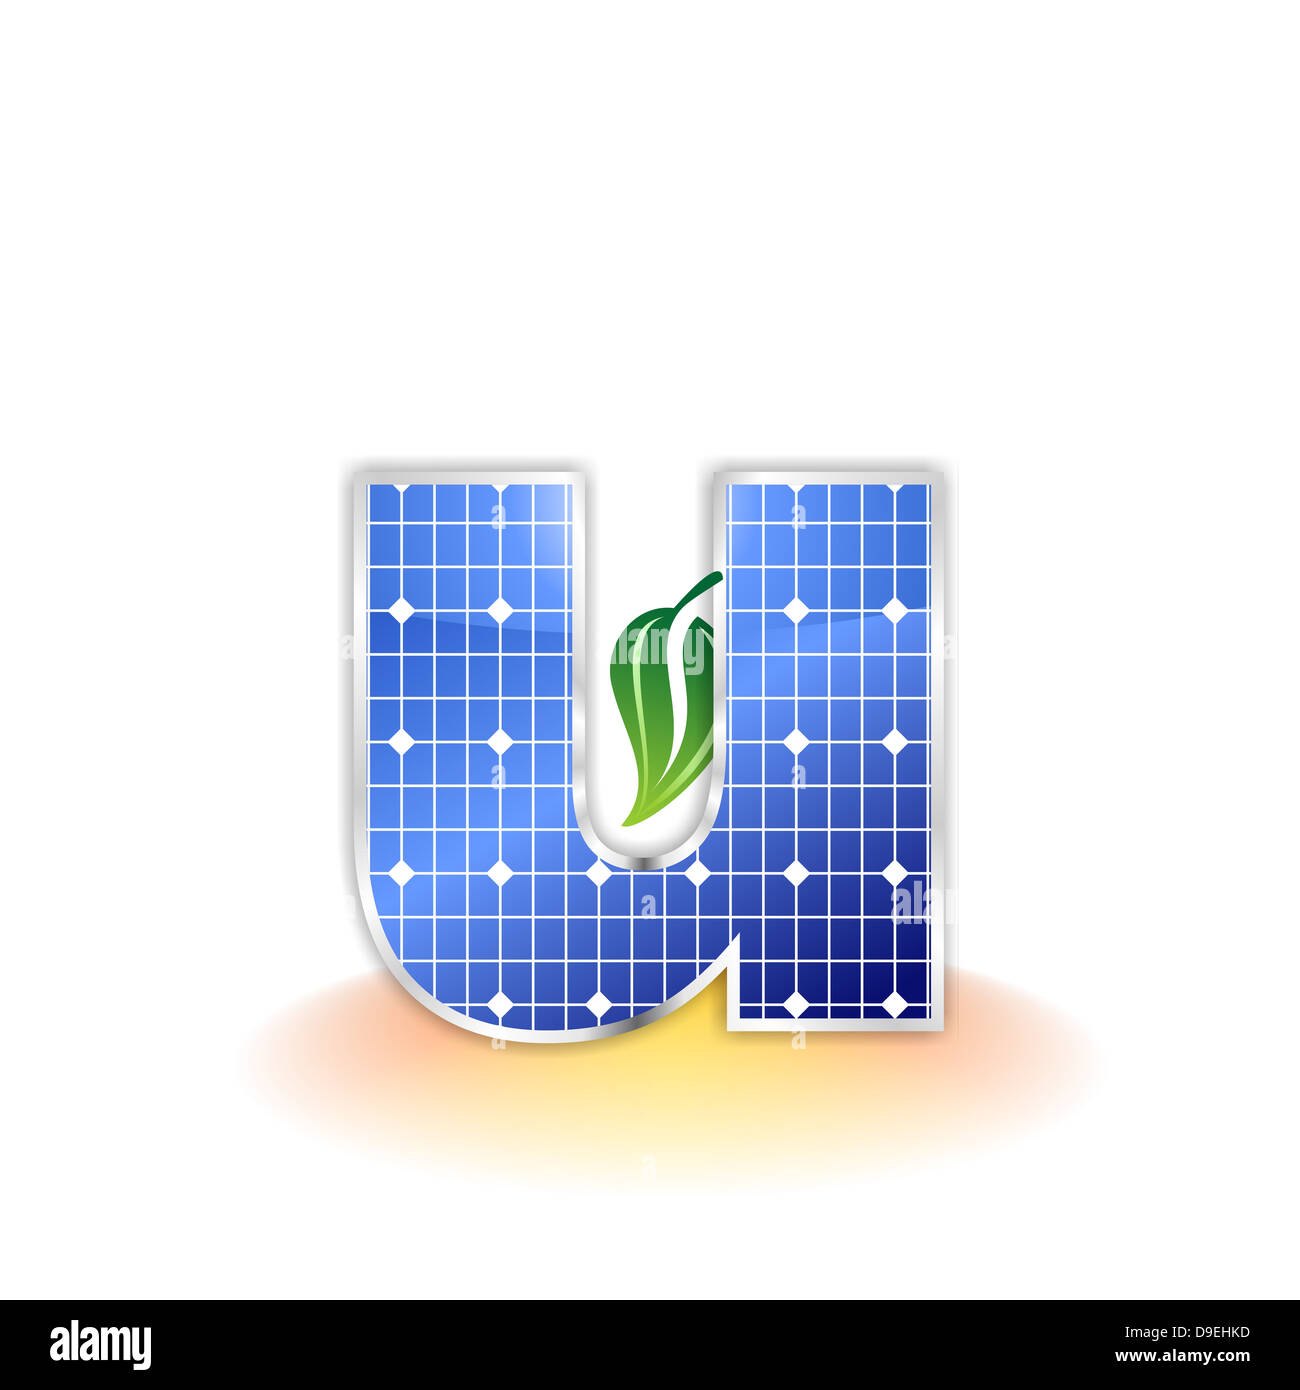 U, letter U, solar panel, illustration, icon, texture - Stock Image